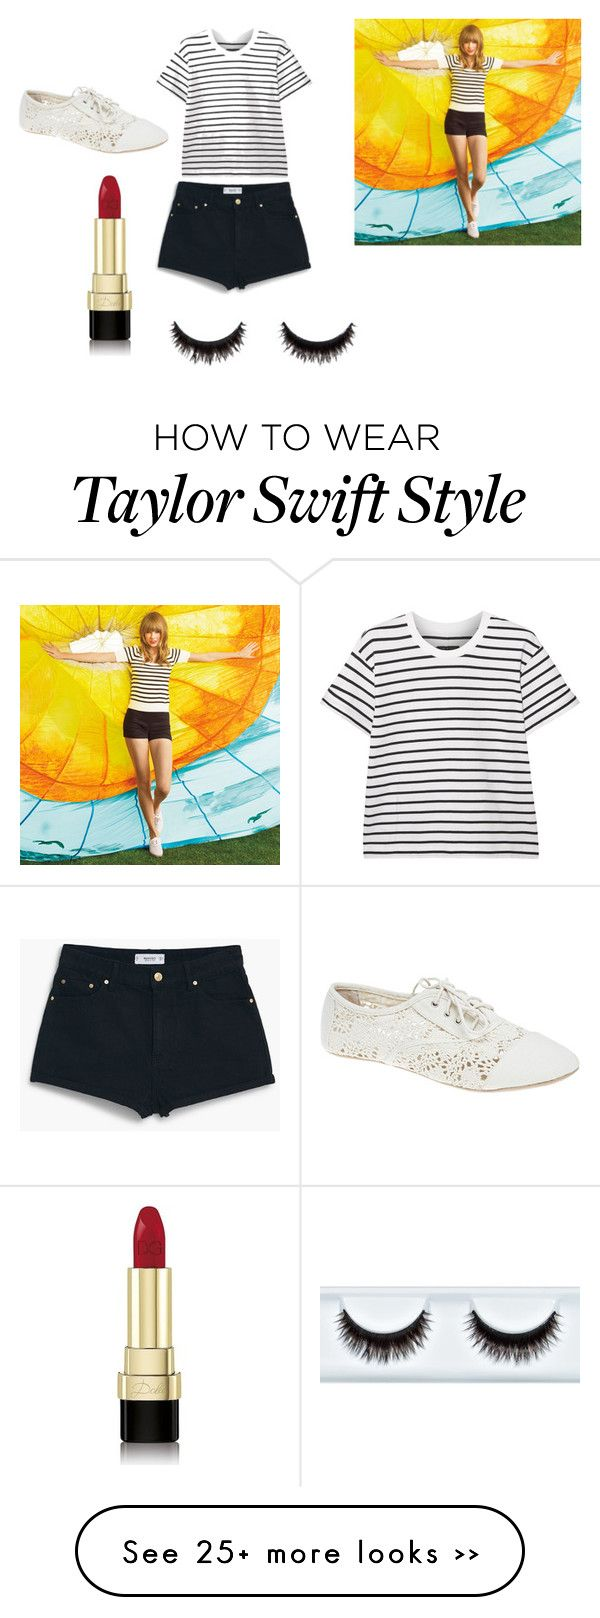 """Taylor Swift"" by emilybeauty101 on Polyvore"